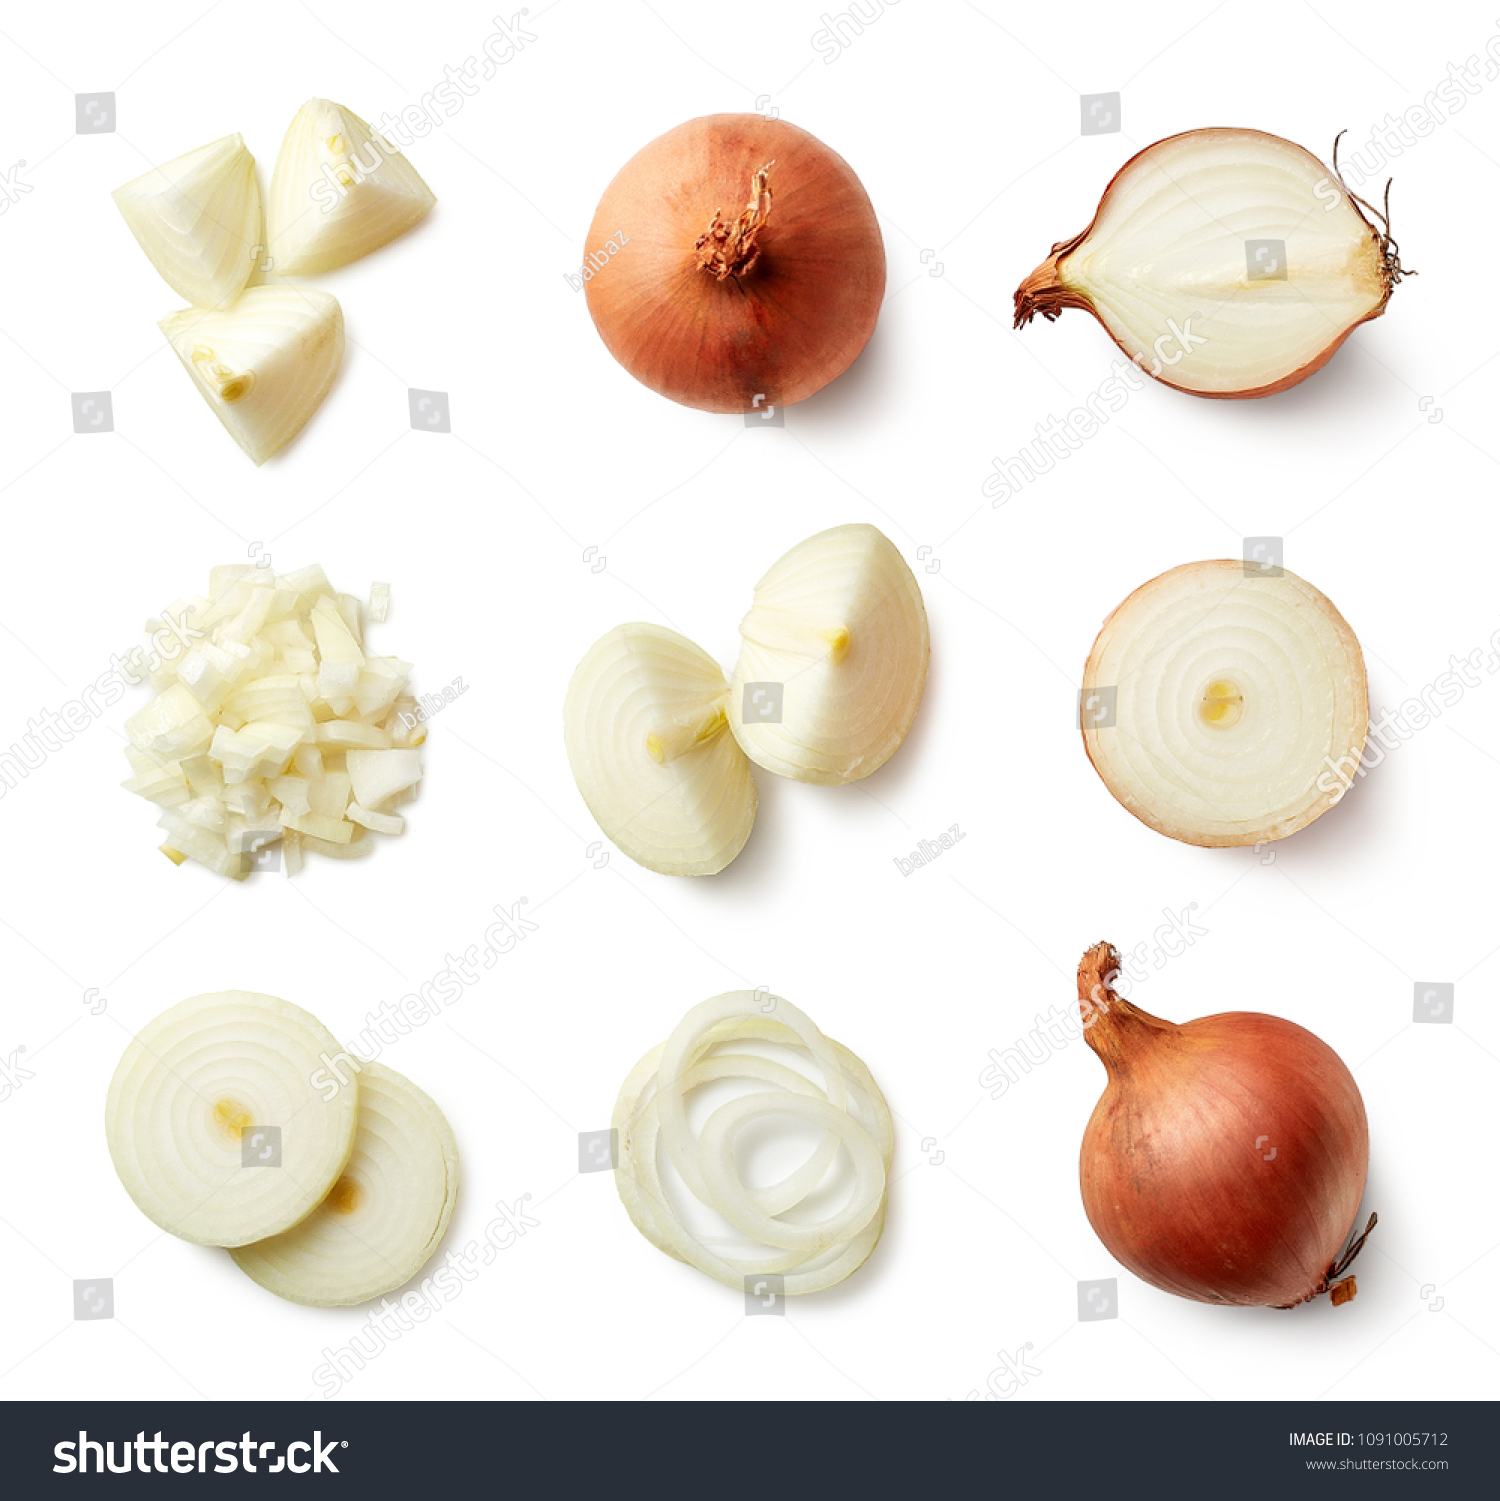 Set of fresh whole and sliced onions isolated on white background. Top view #1091005712